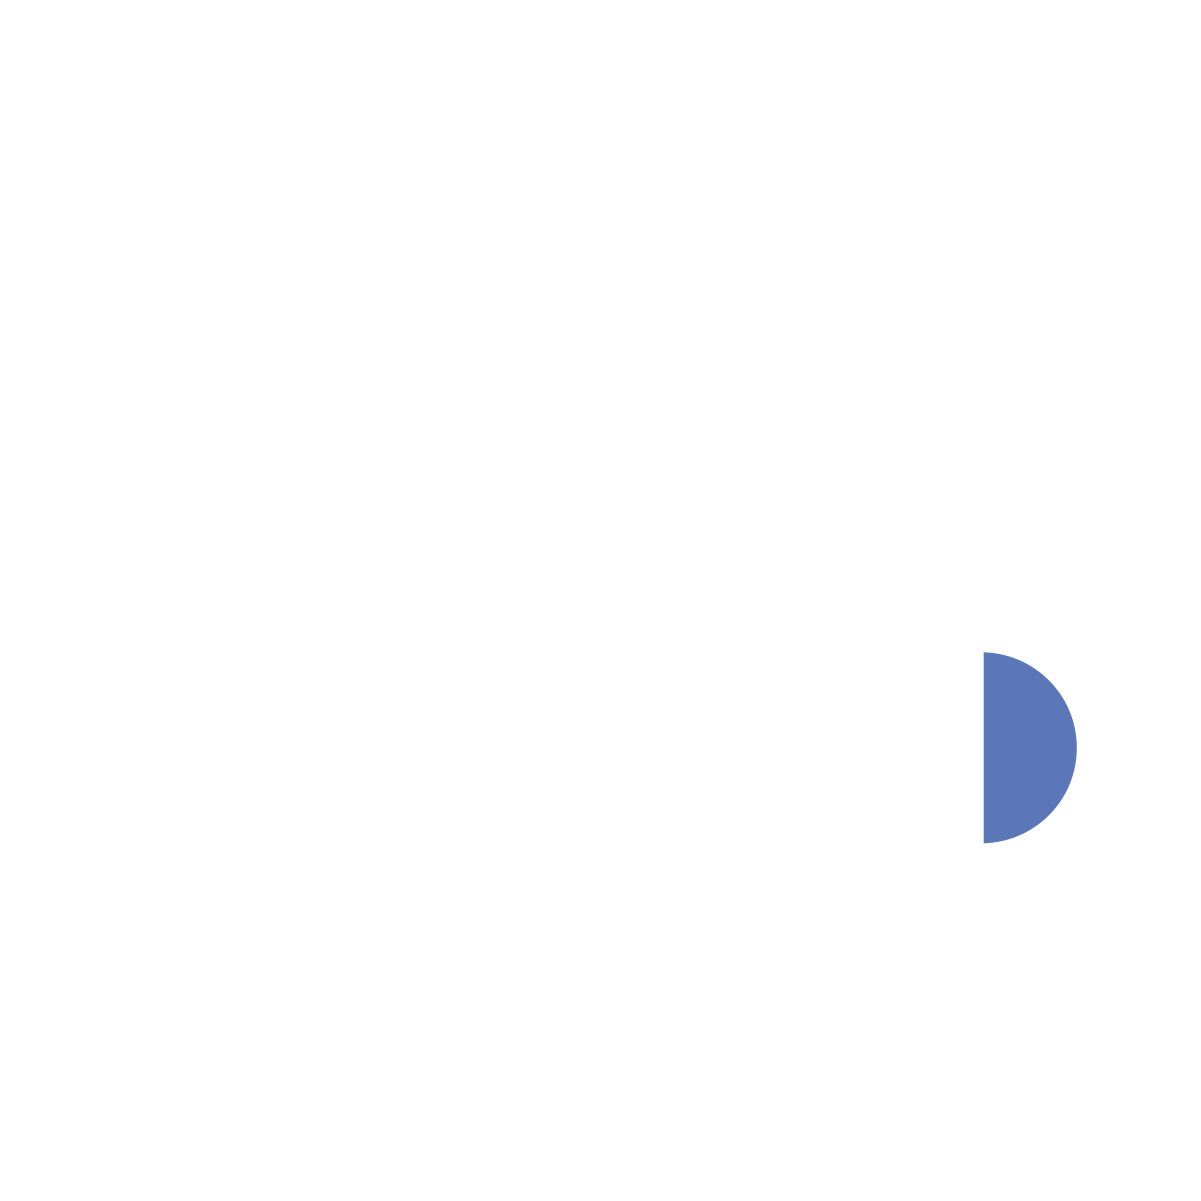 Cube with Points